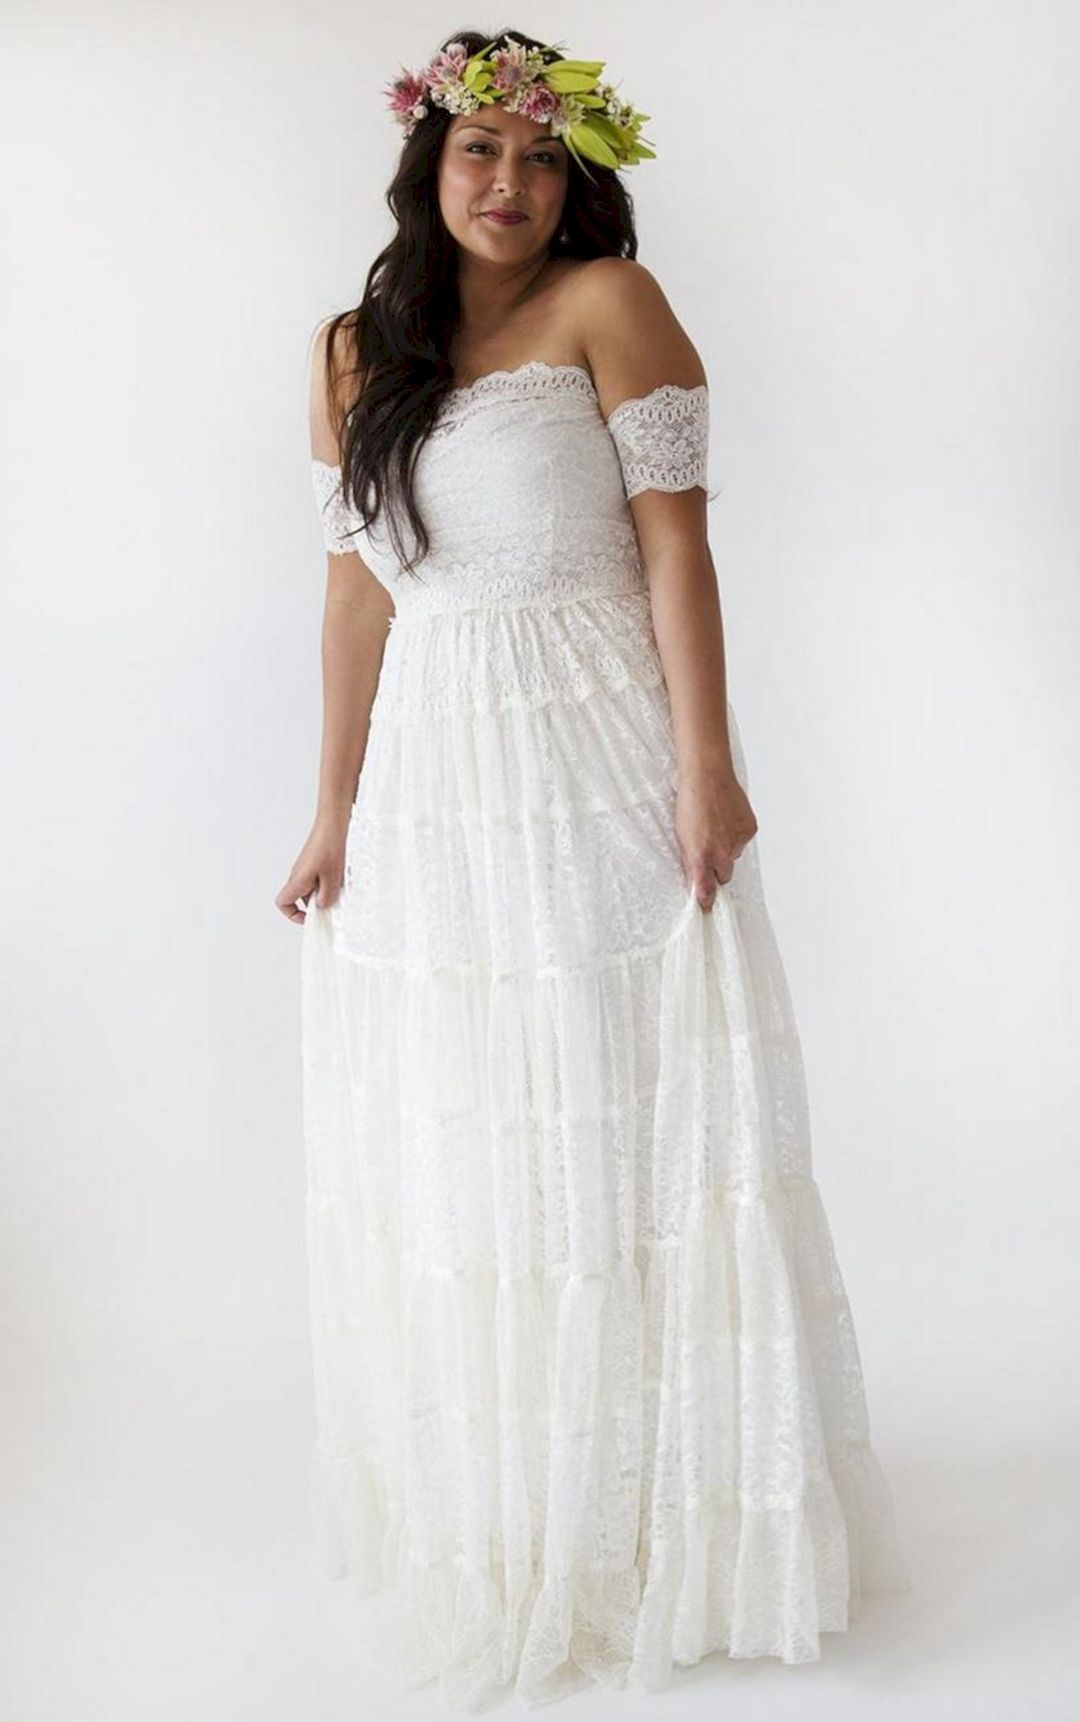 Cool Beautiful 30 Summer Casual Wedding Dresses Ideas Https Oosile Com Beautiful 30 Summer Casual Wedding Dress Summer Wedding Dress Wedding Dresses Hippie